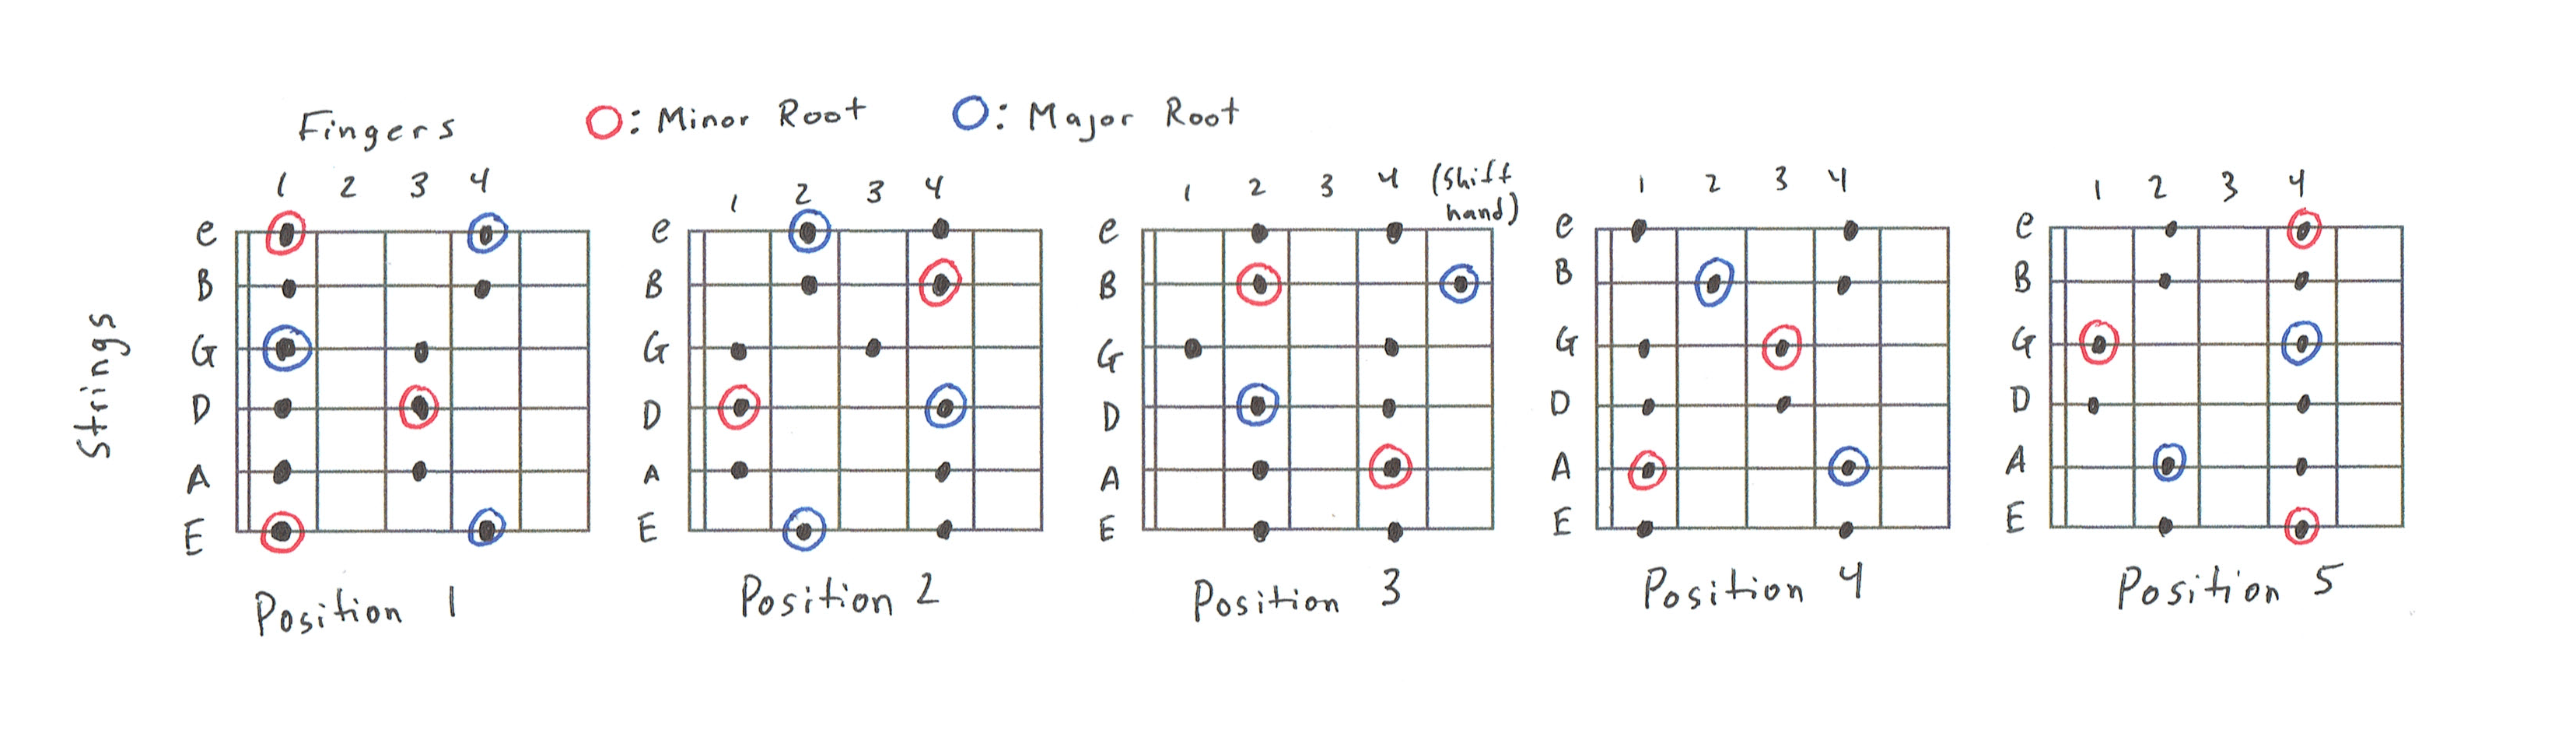 5 Position Pentatonic Scale Charts